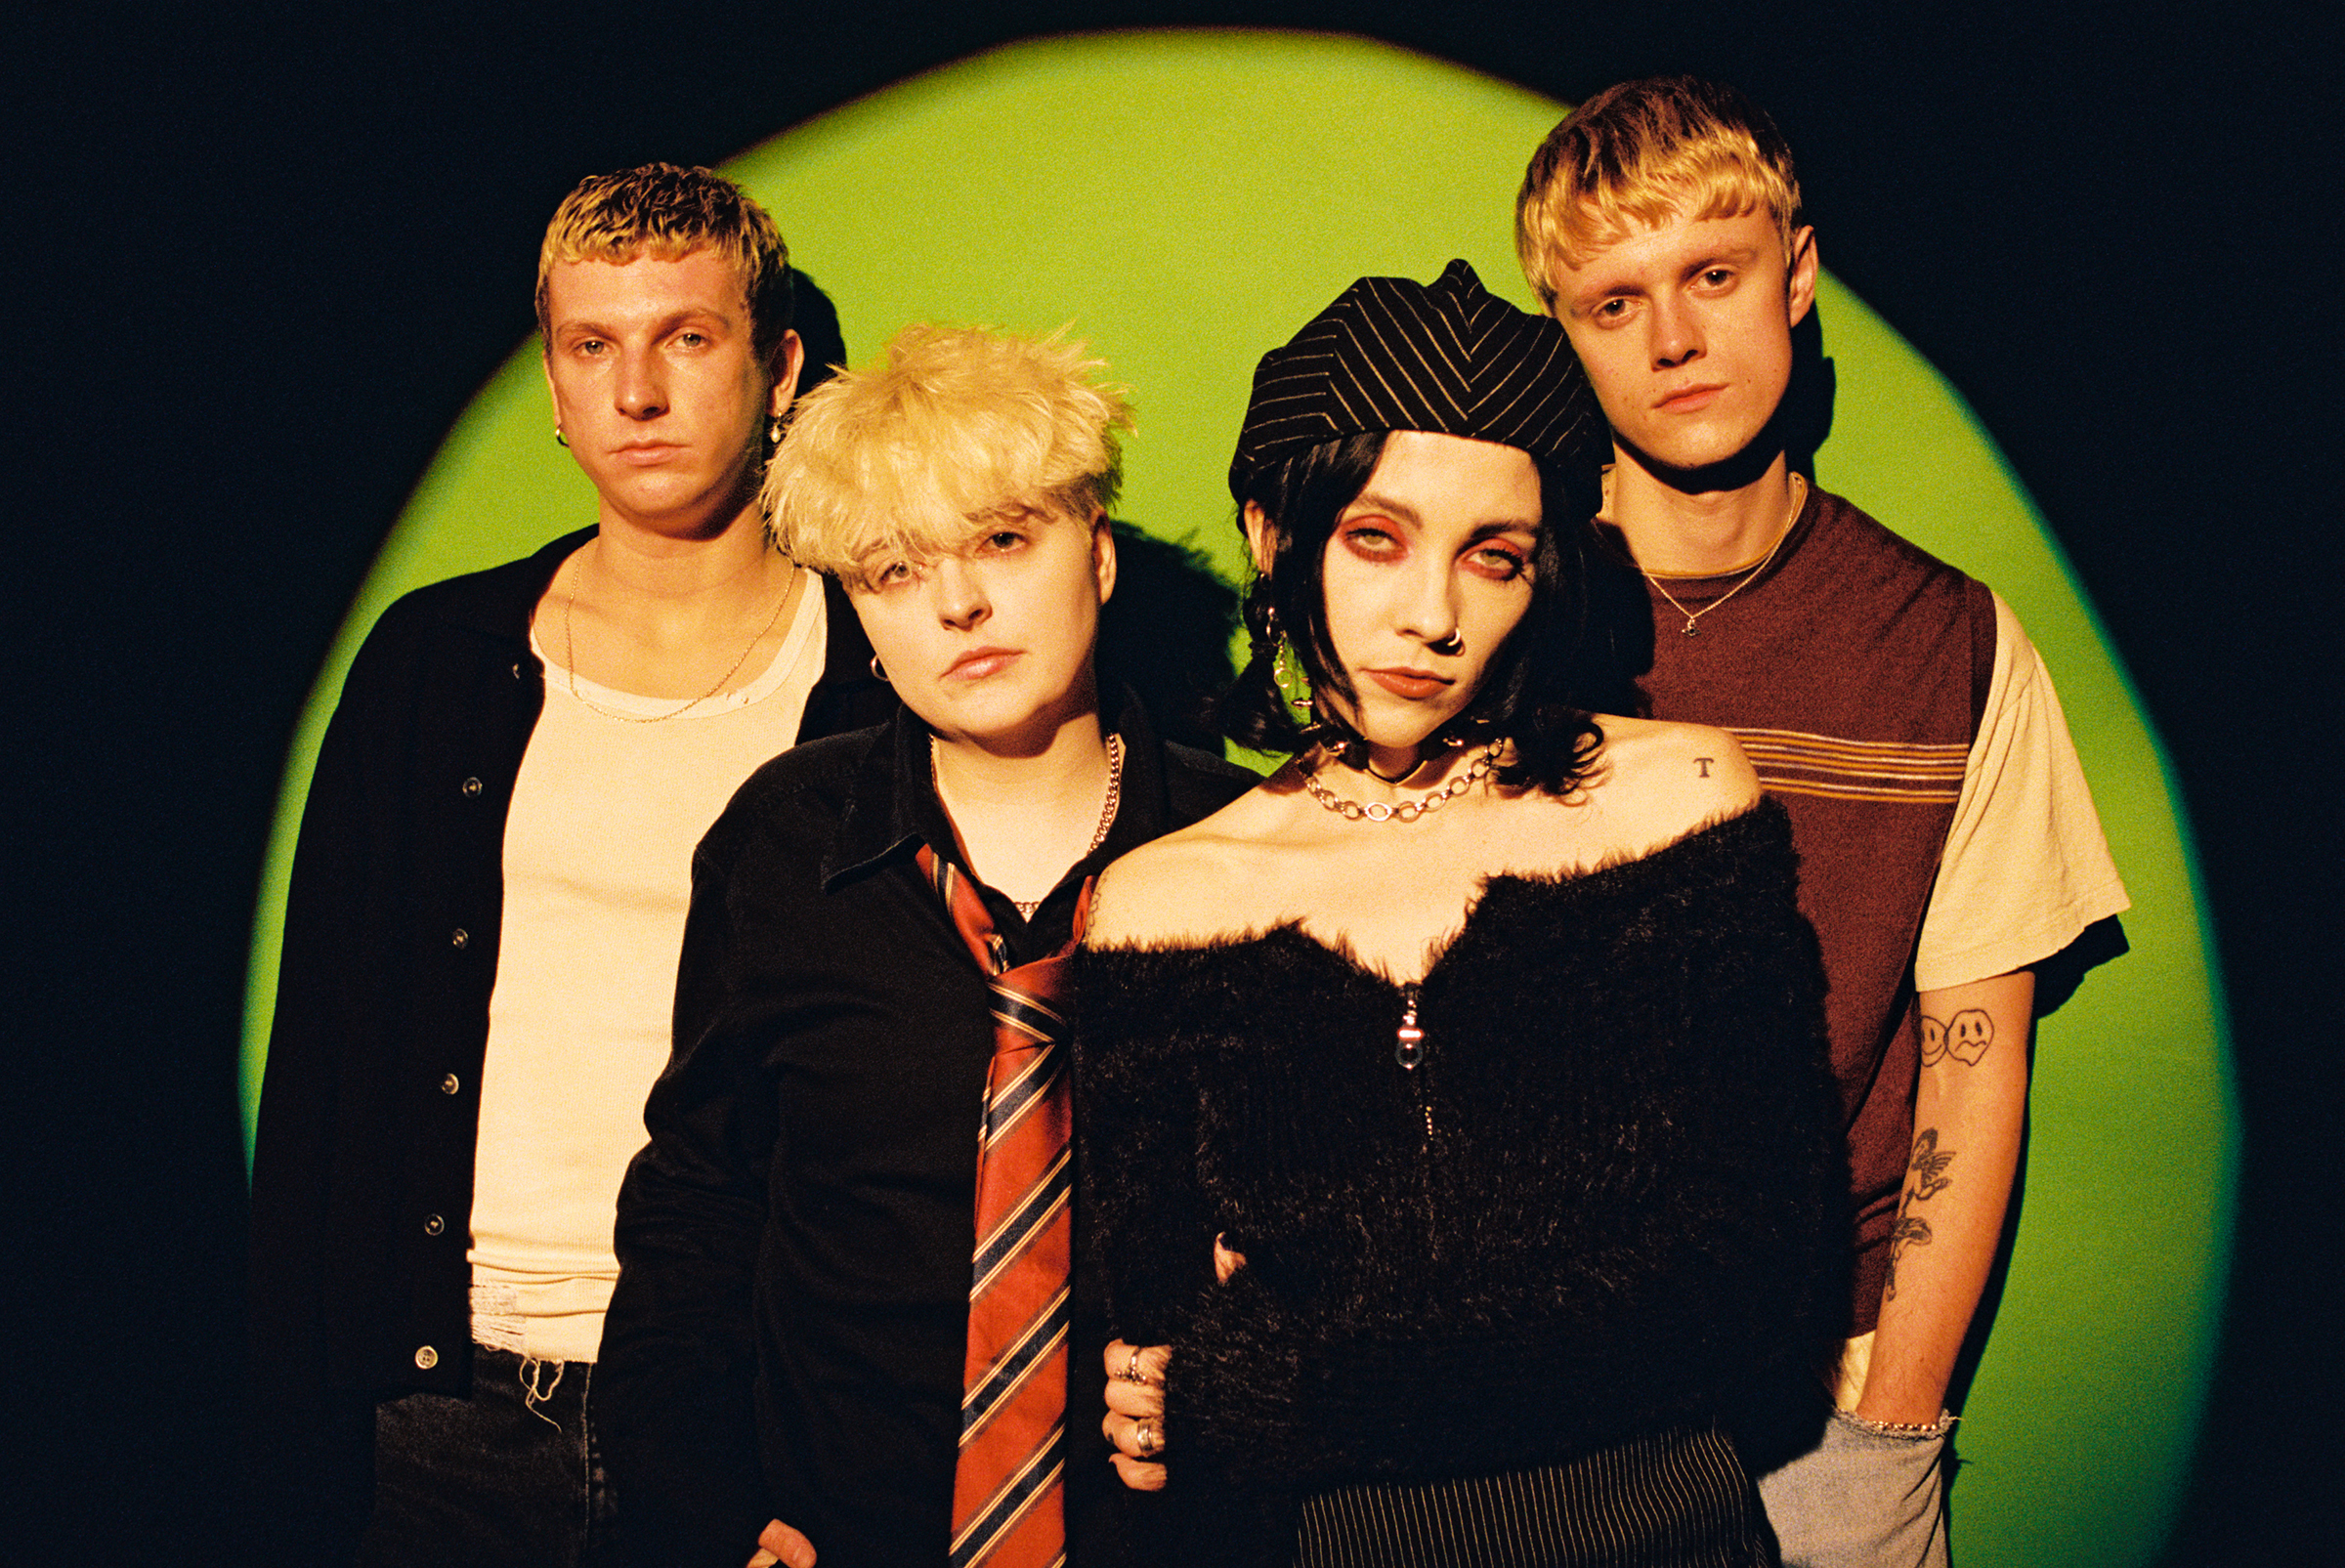 PALE WAVES reveal the video for new single 'She's My Religion' - Watch Now!